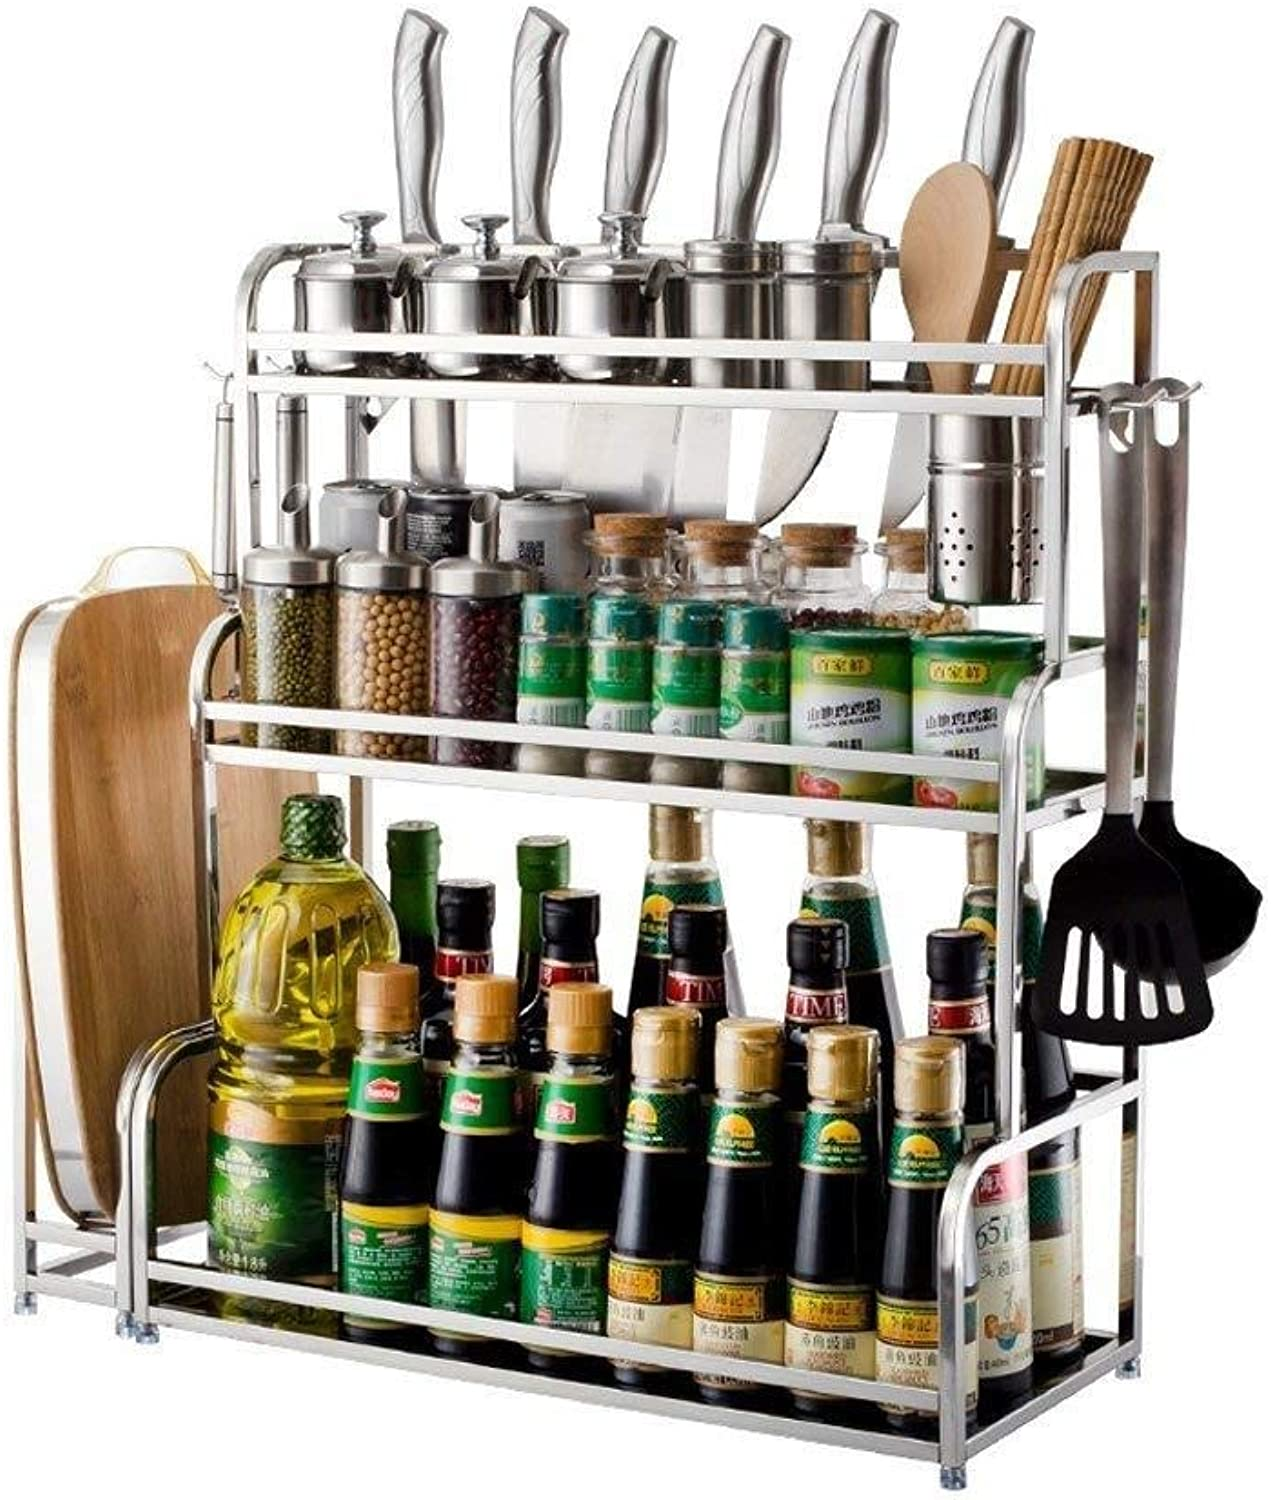 304 Stainless Steel Kitchen Rack Spice Rack 3 Layer Multi-Functional Floor Knife Rack Soy Sauce Vinegar Bottle Storage Rack ZXMDMZ (Size   Small)